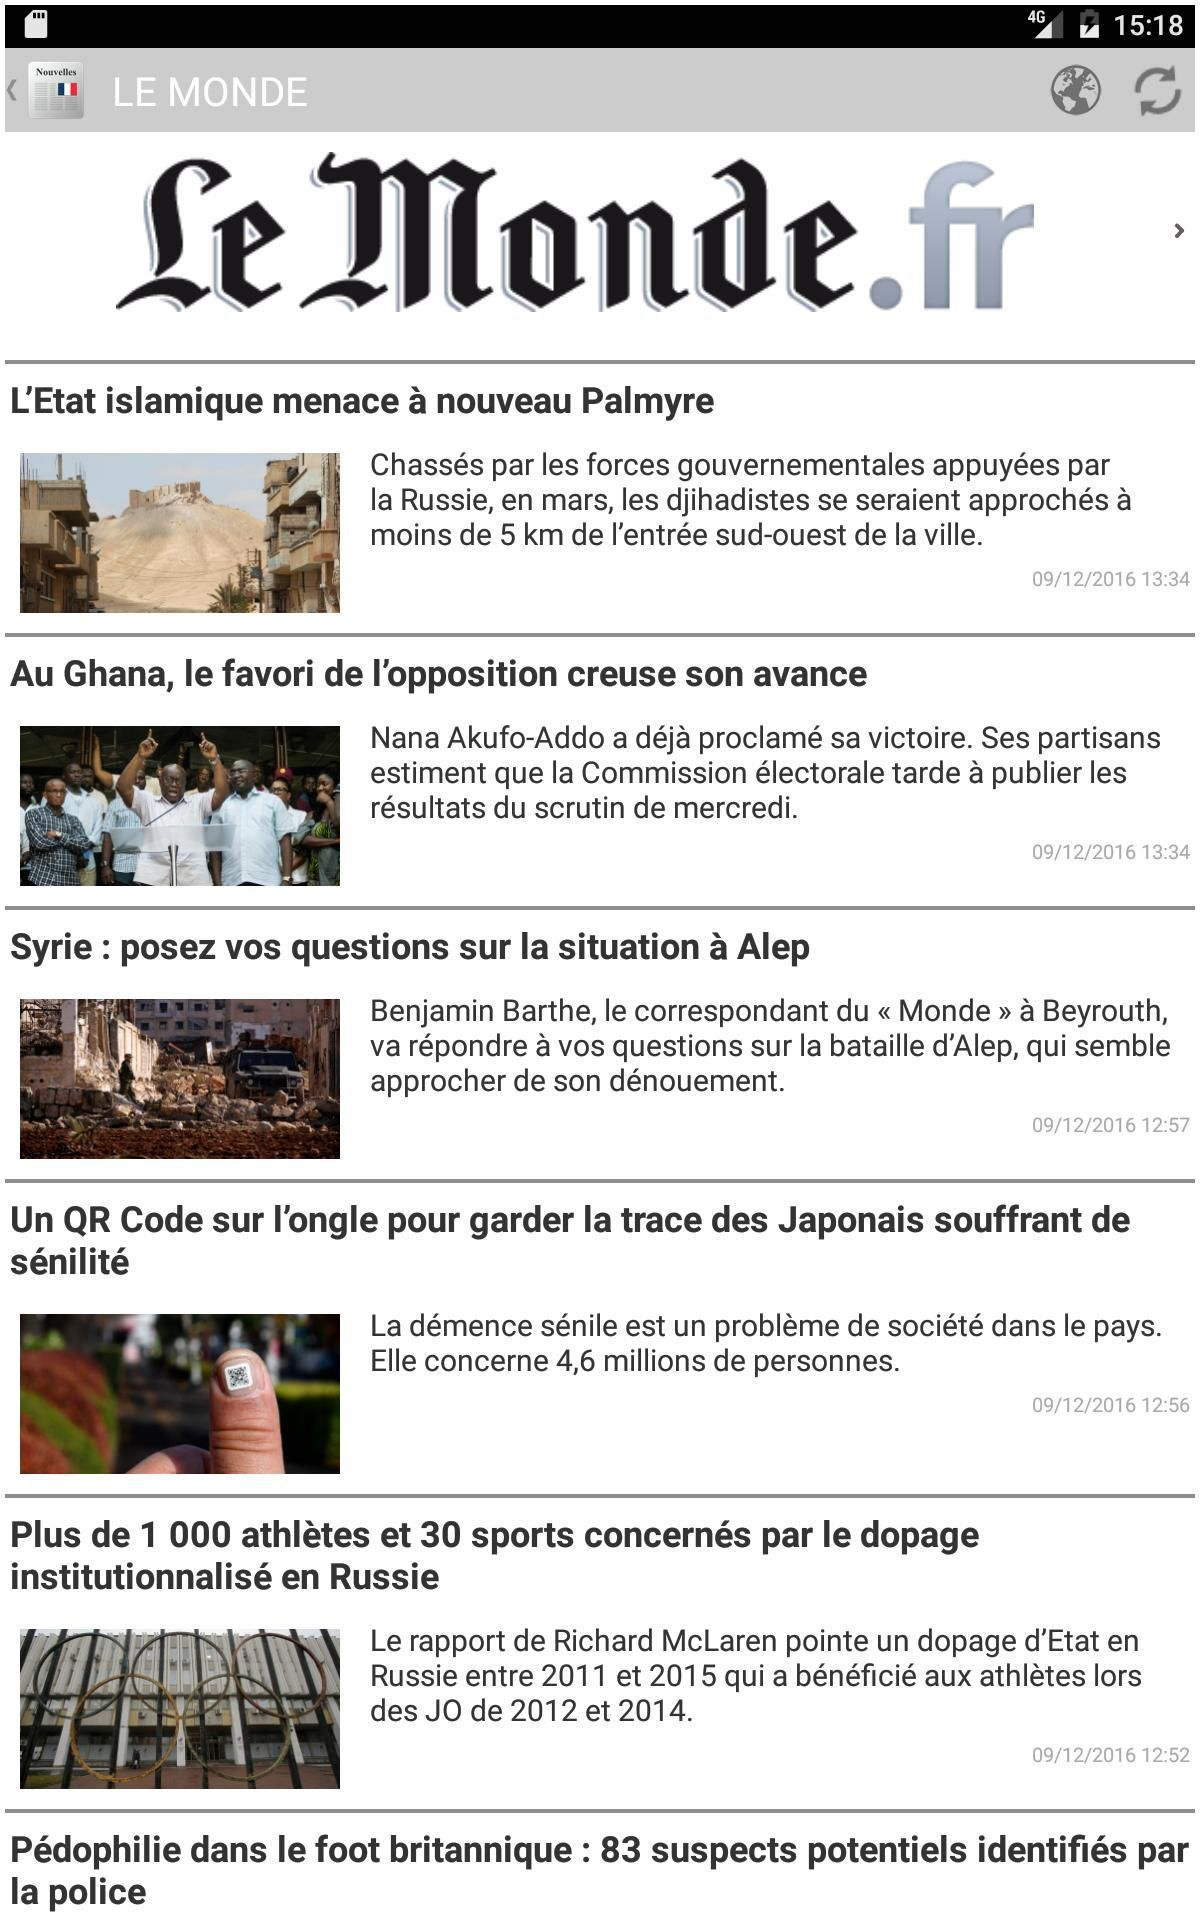 Magazine En Francais Journaux Et Magazines Fran§ais for android Apk Download